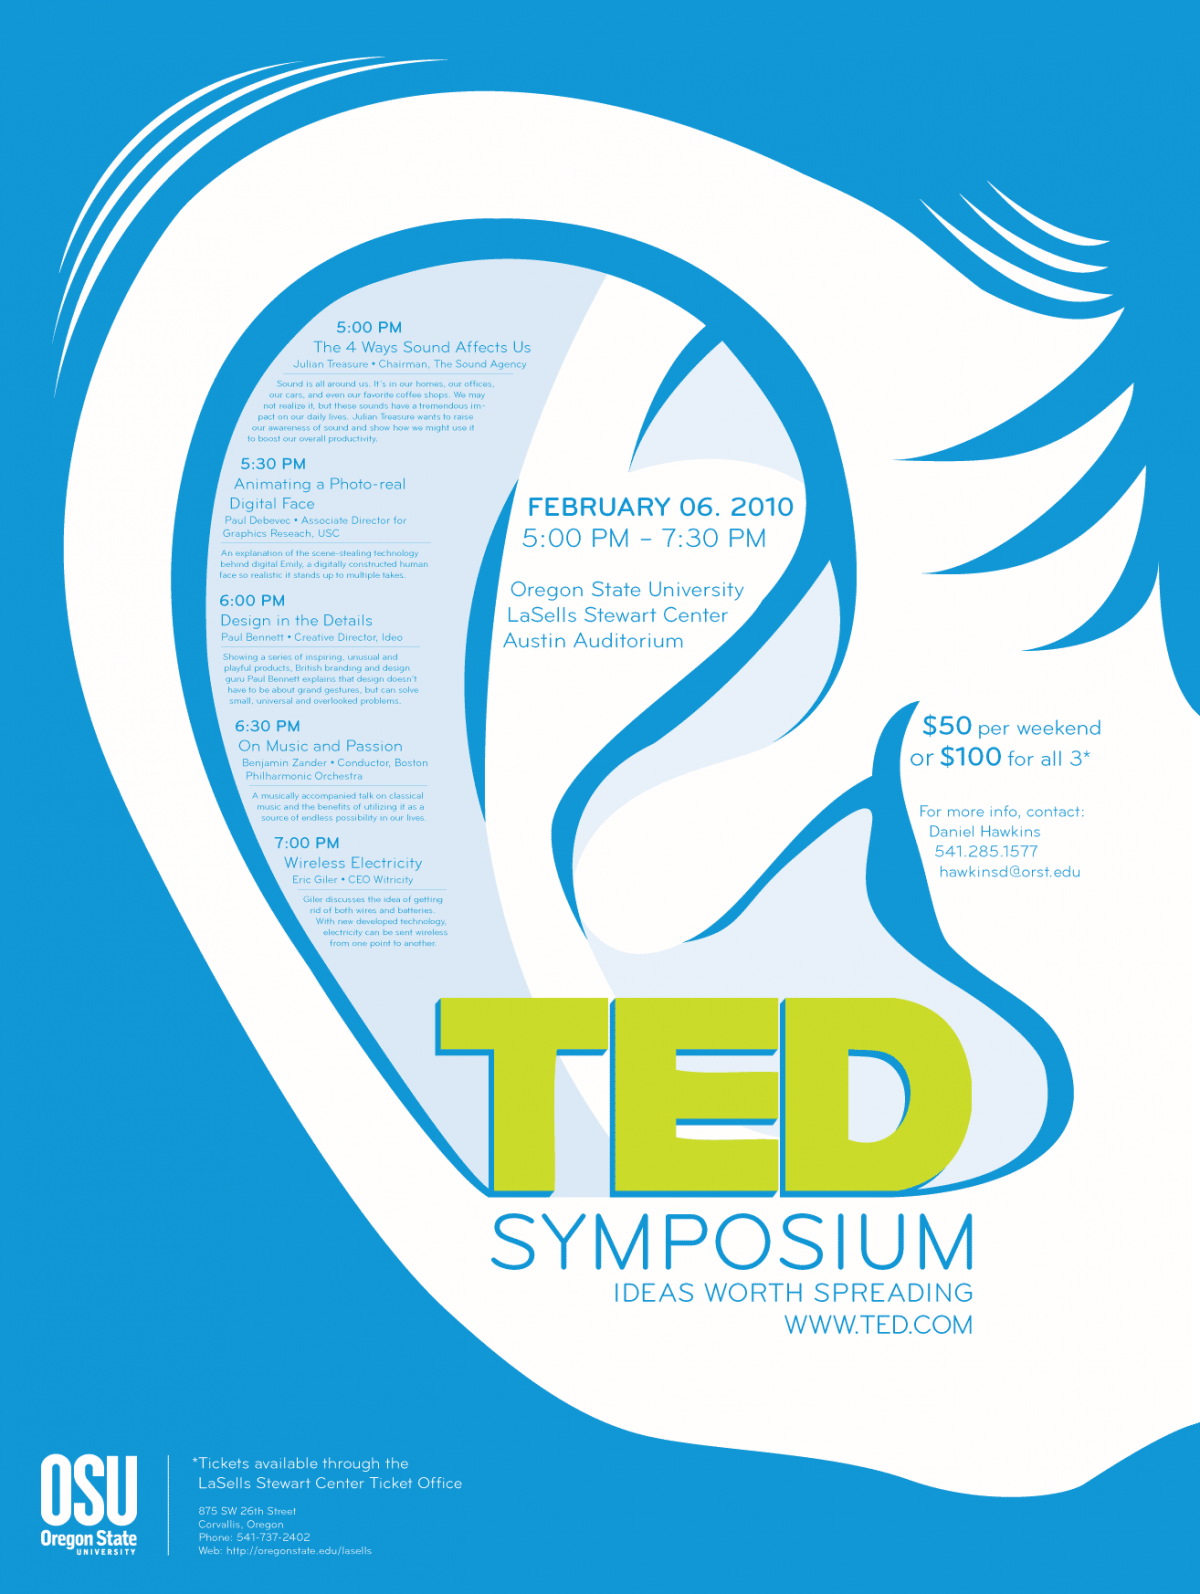 Poster design for symposium - Ted Symposium Poster February 5 2014 Hawkinsd Graphic Design 0 Art327_proj_3_poster_final